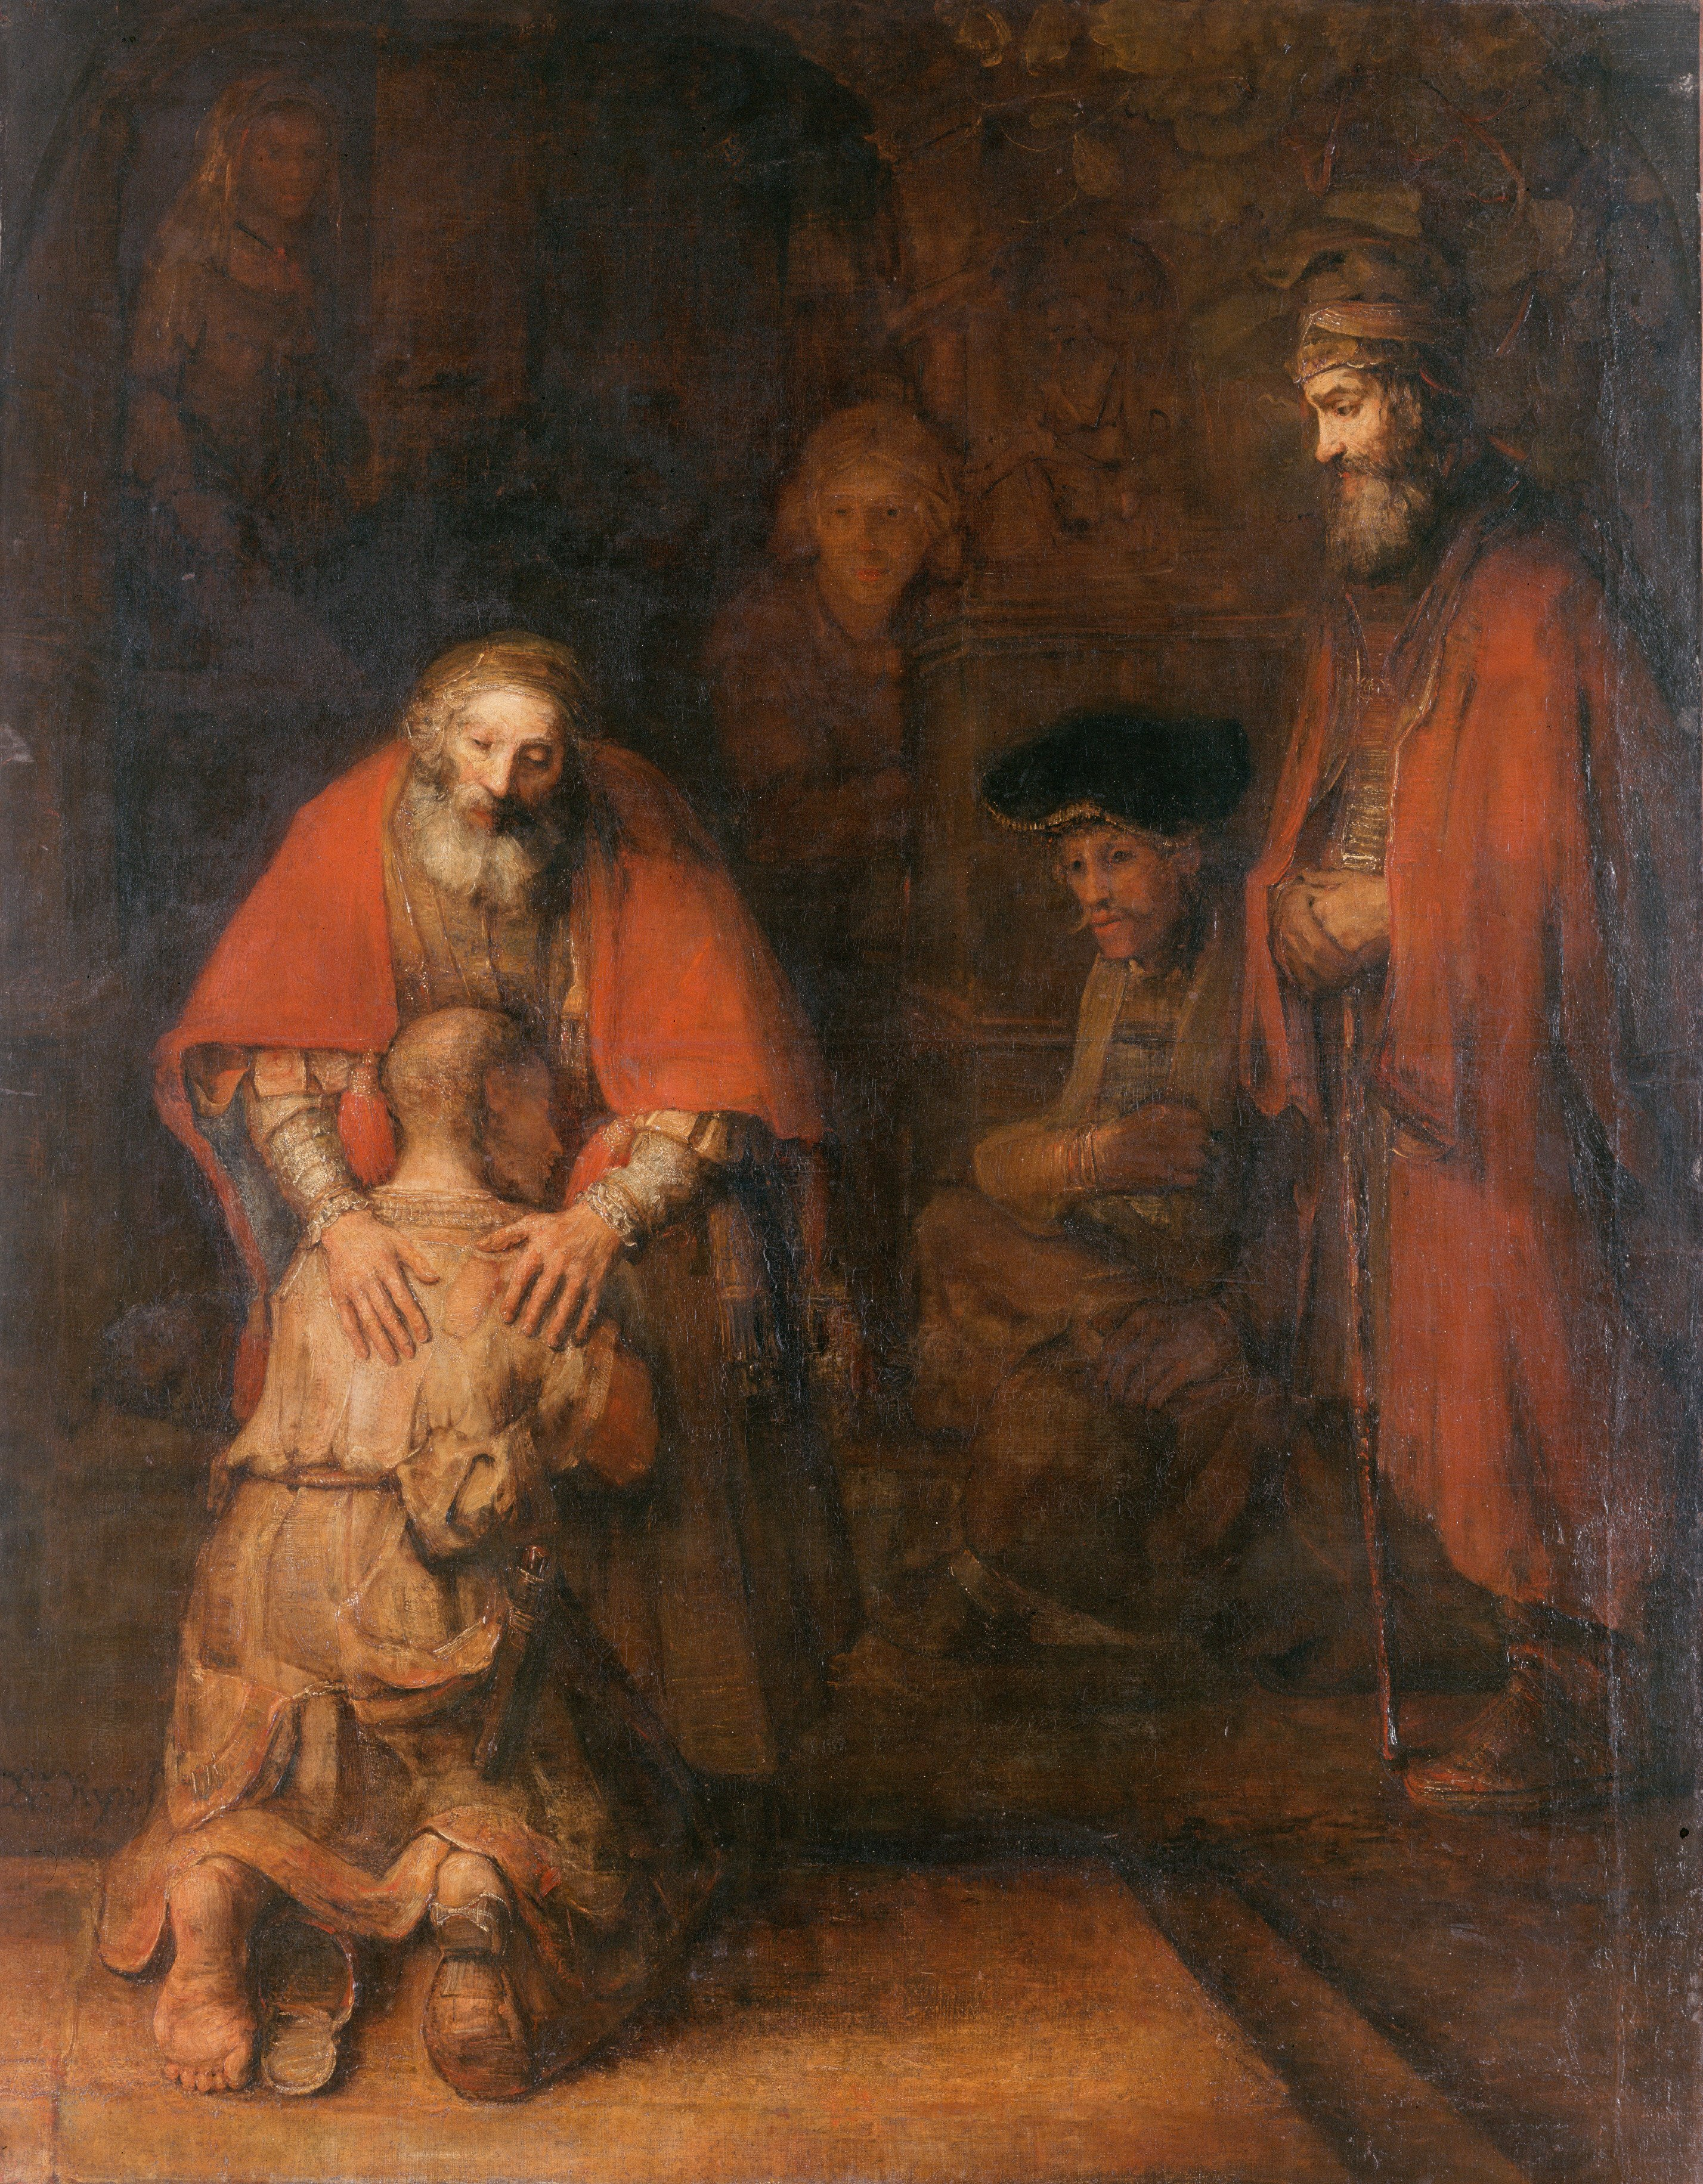 Rembrandt Van Rijn, The Return of the Prodigal Son c. 1669